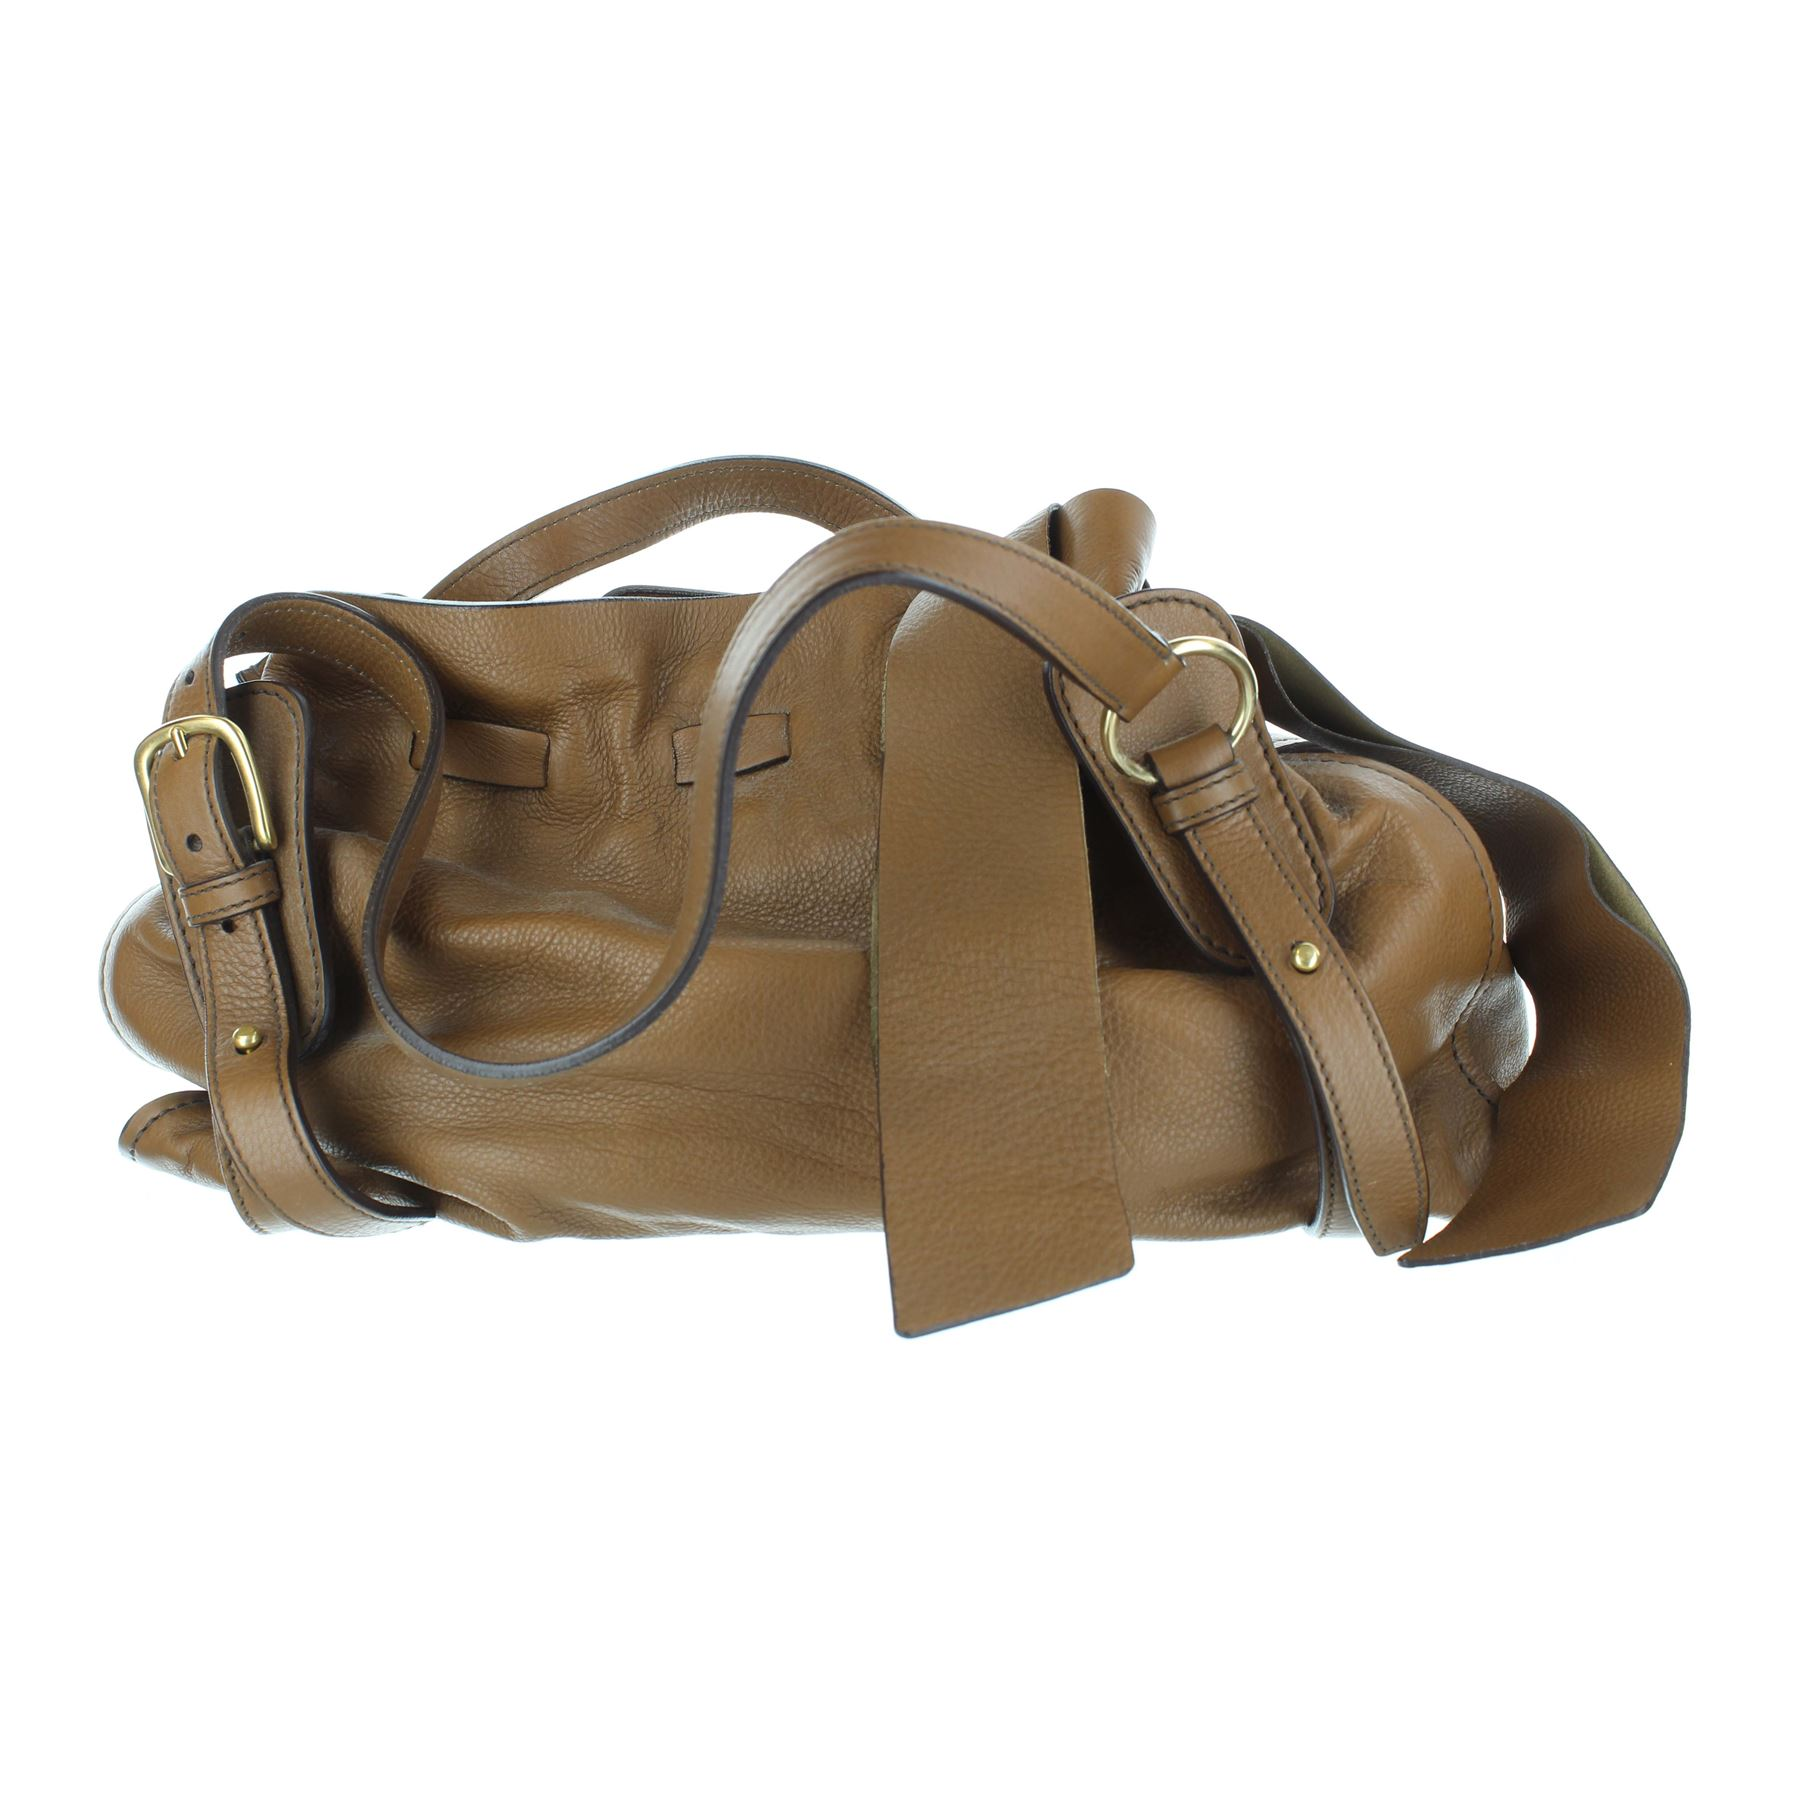 4f6ef5853068 MIU MIU Brown Leather Shoulder Bag